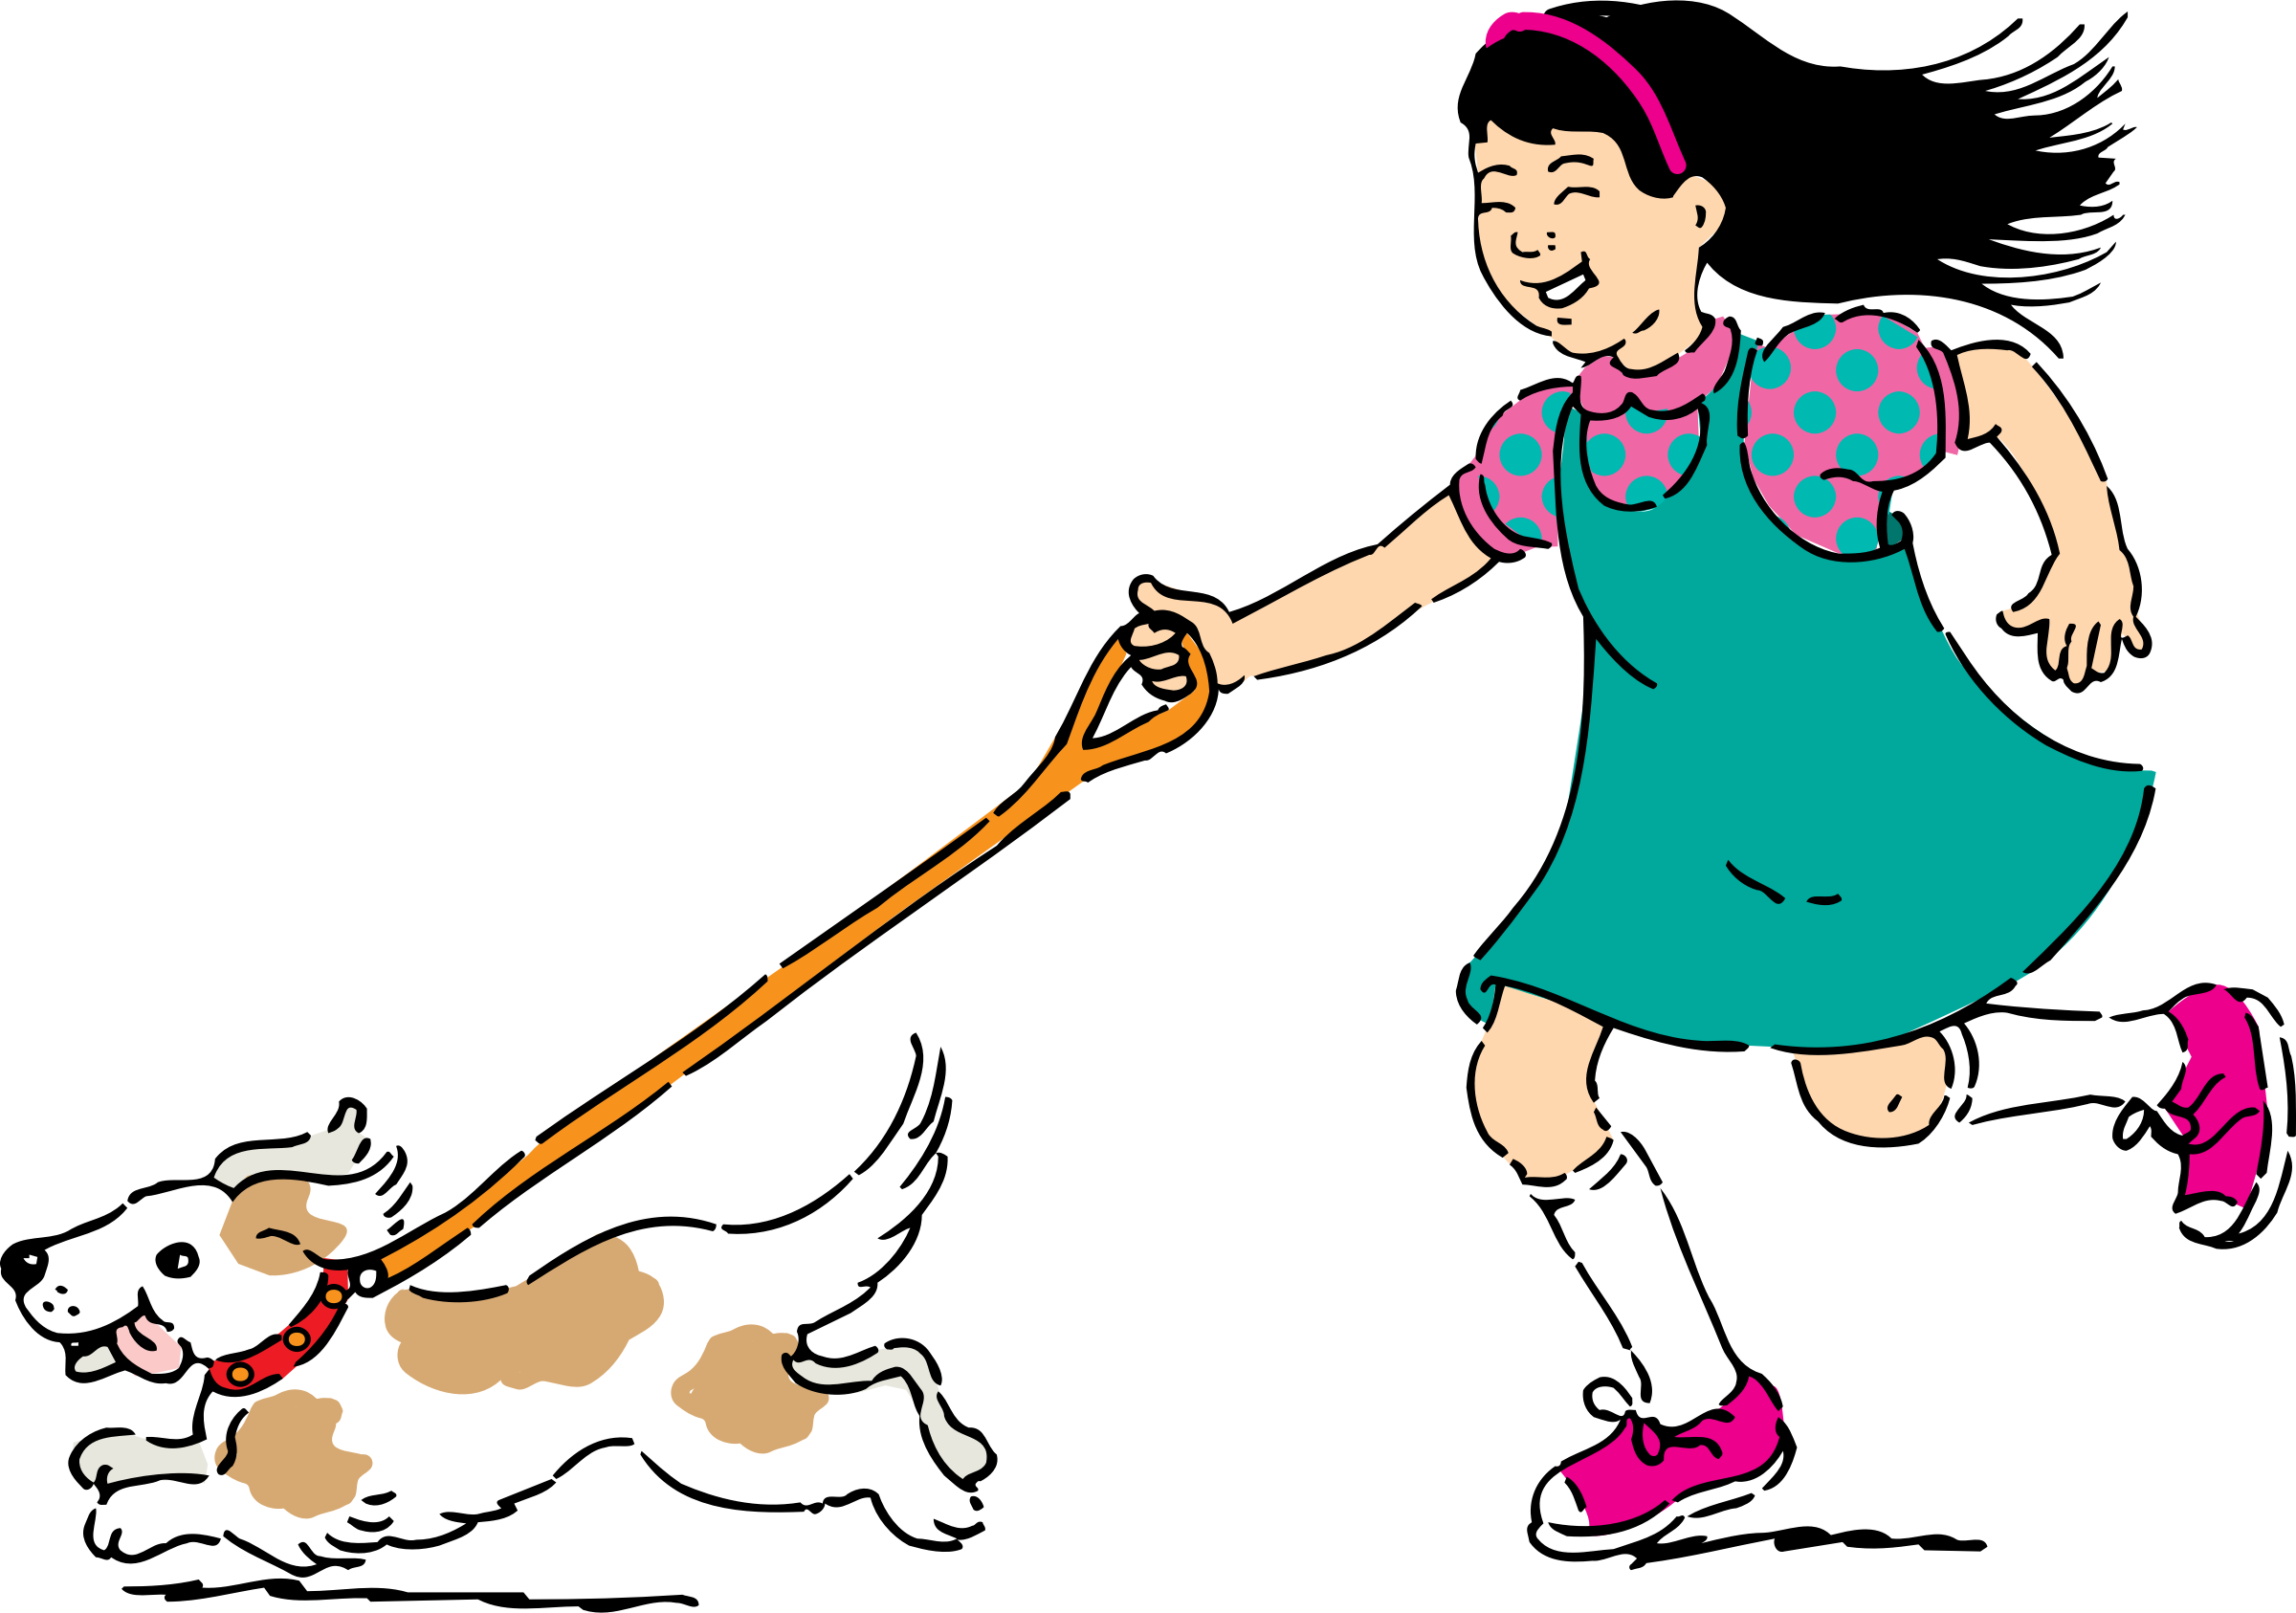 Dog walking clipart free banner freeuse stock Clipart - walking dog banner freeuse stock